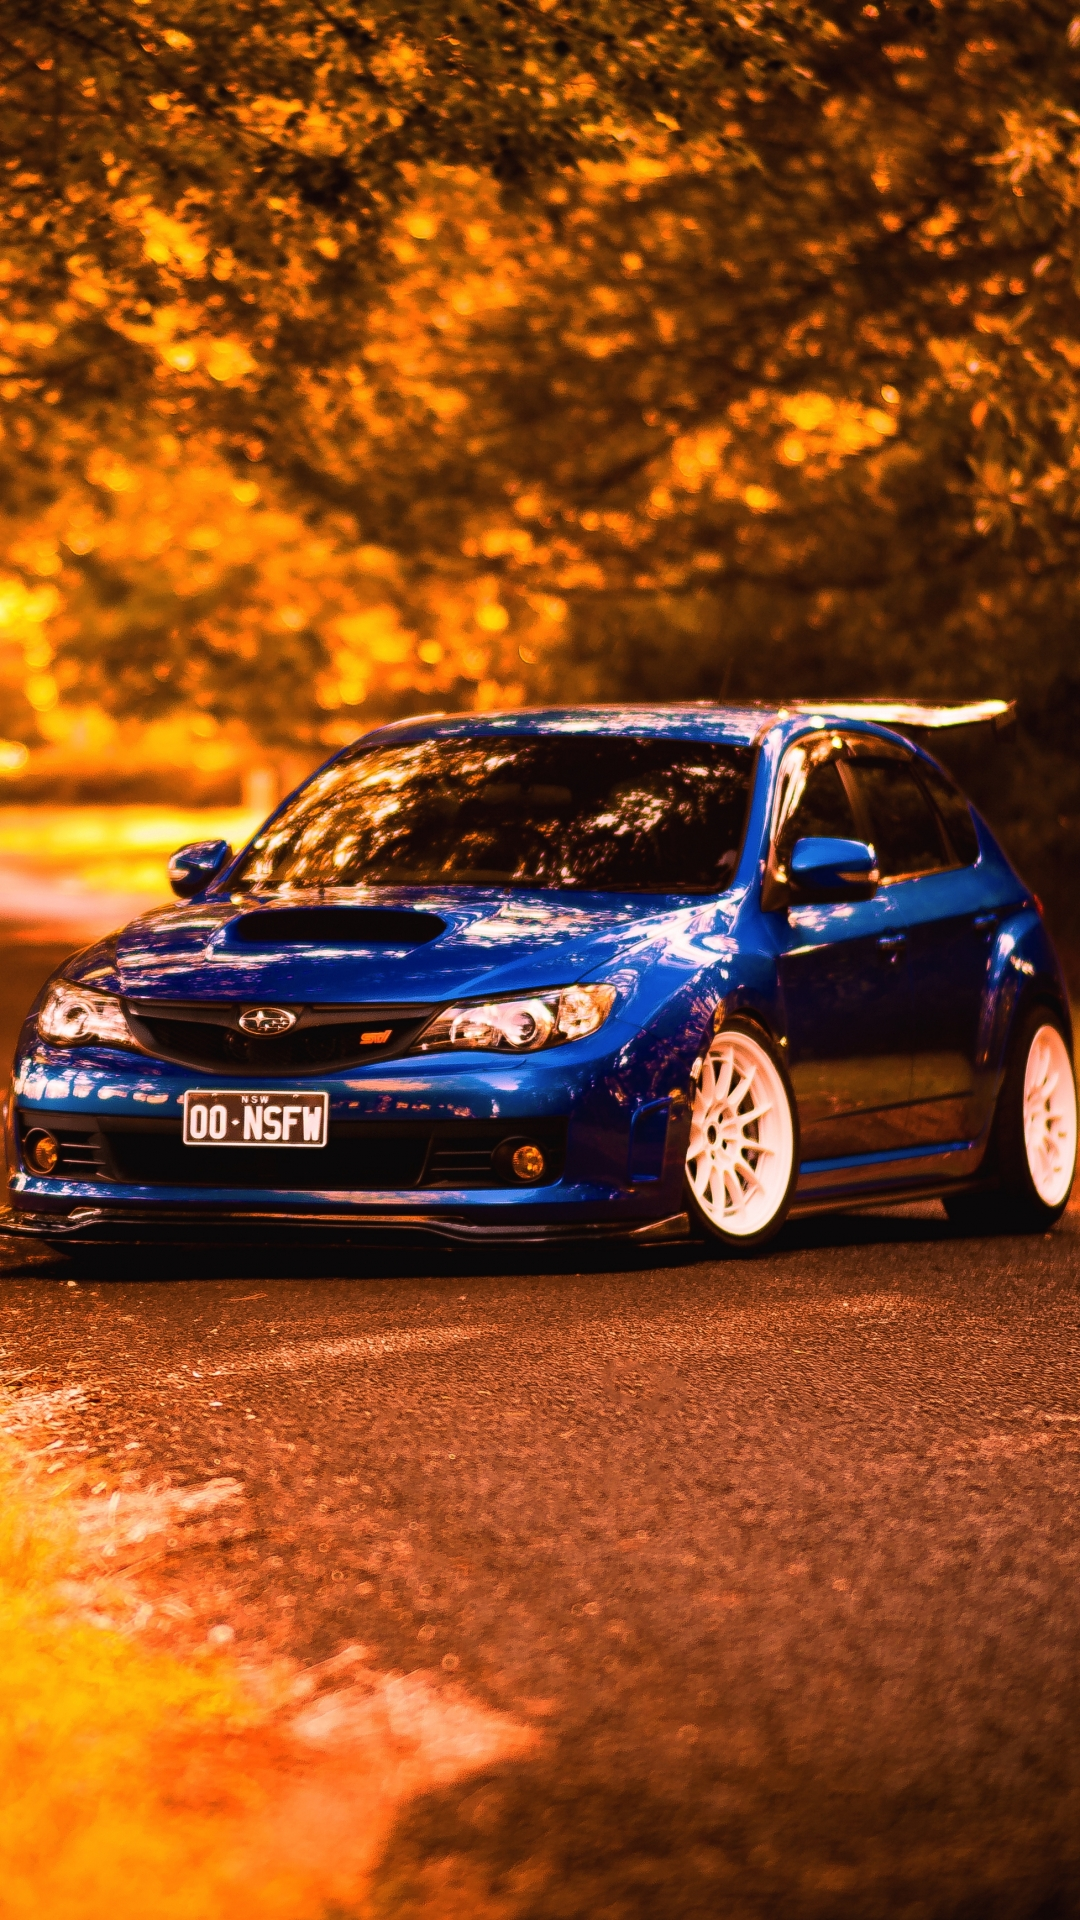 Download Subaru Iphone Wallpaper Gallery